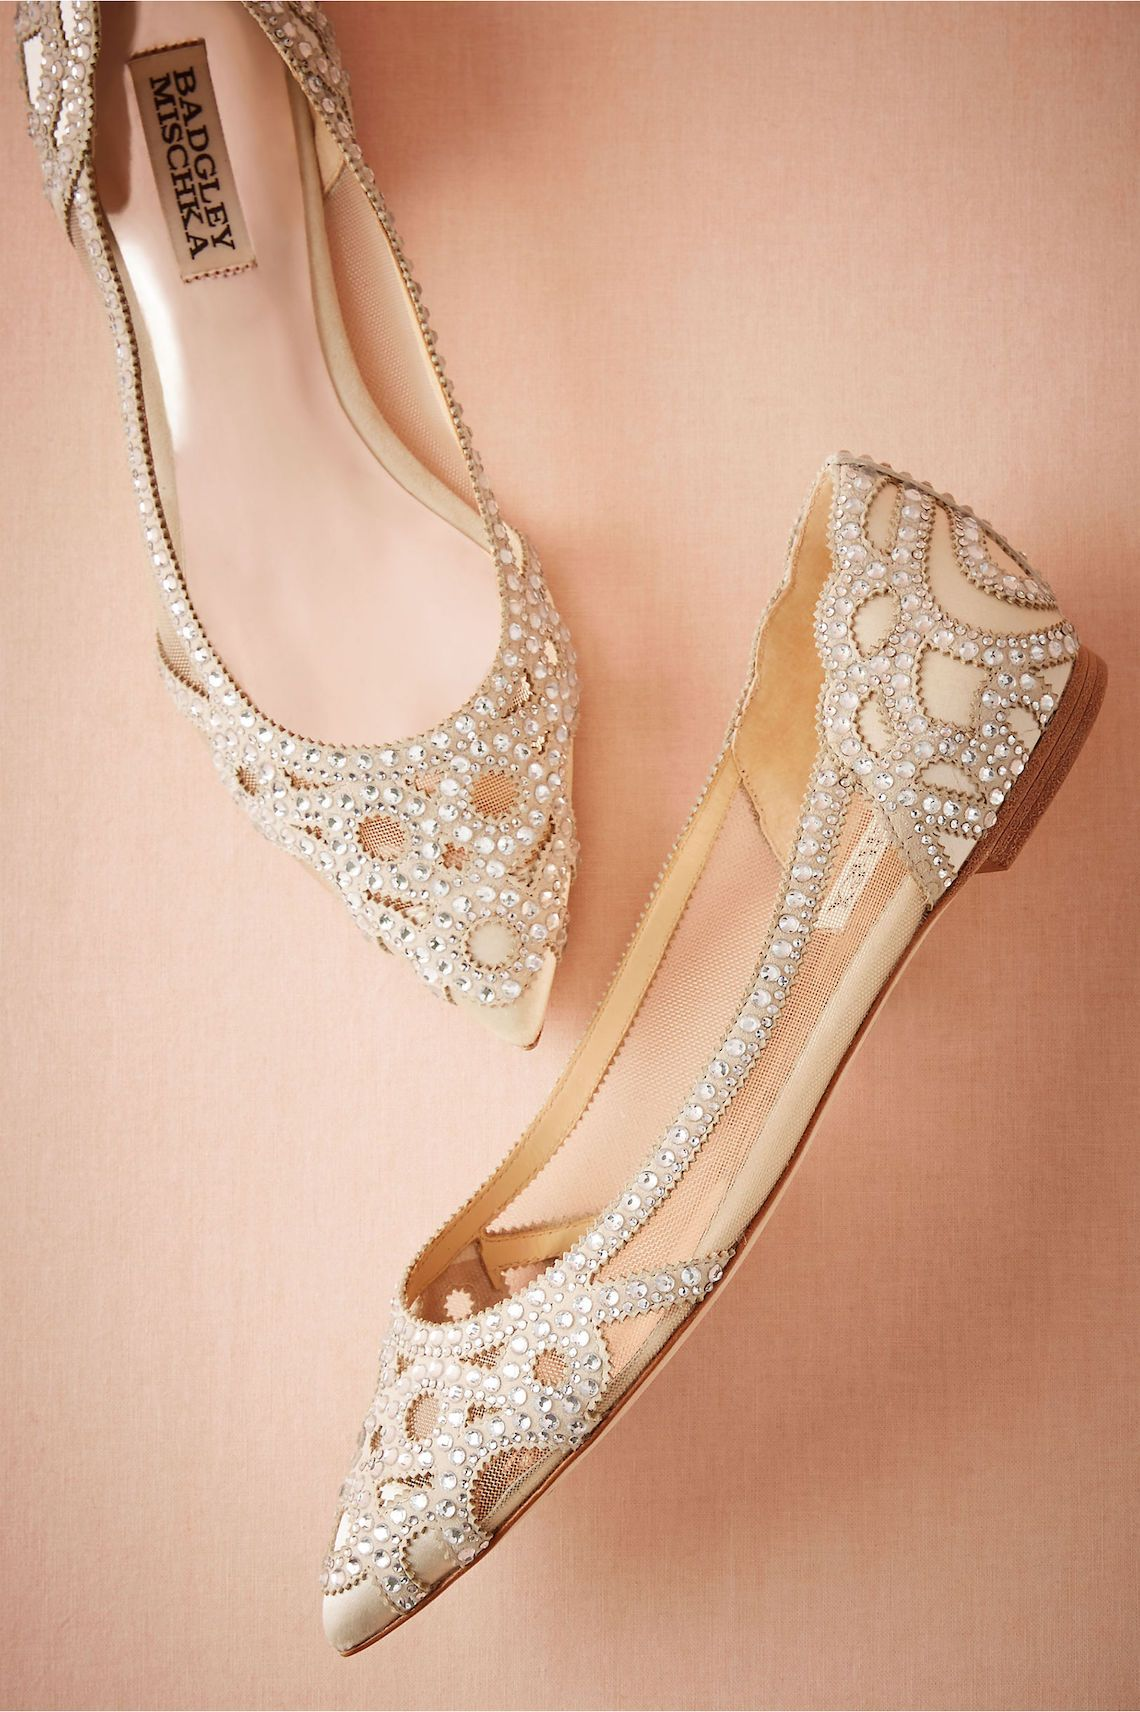 ea08d3124382d 10 Flat Wedding Shoes (That Are Just As Chic As Heels) | shoegasm ...